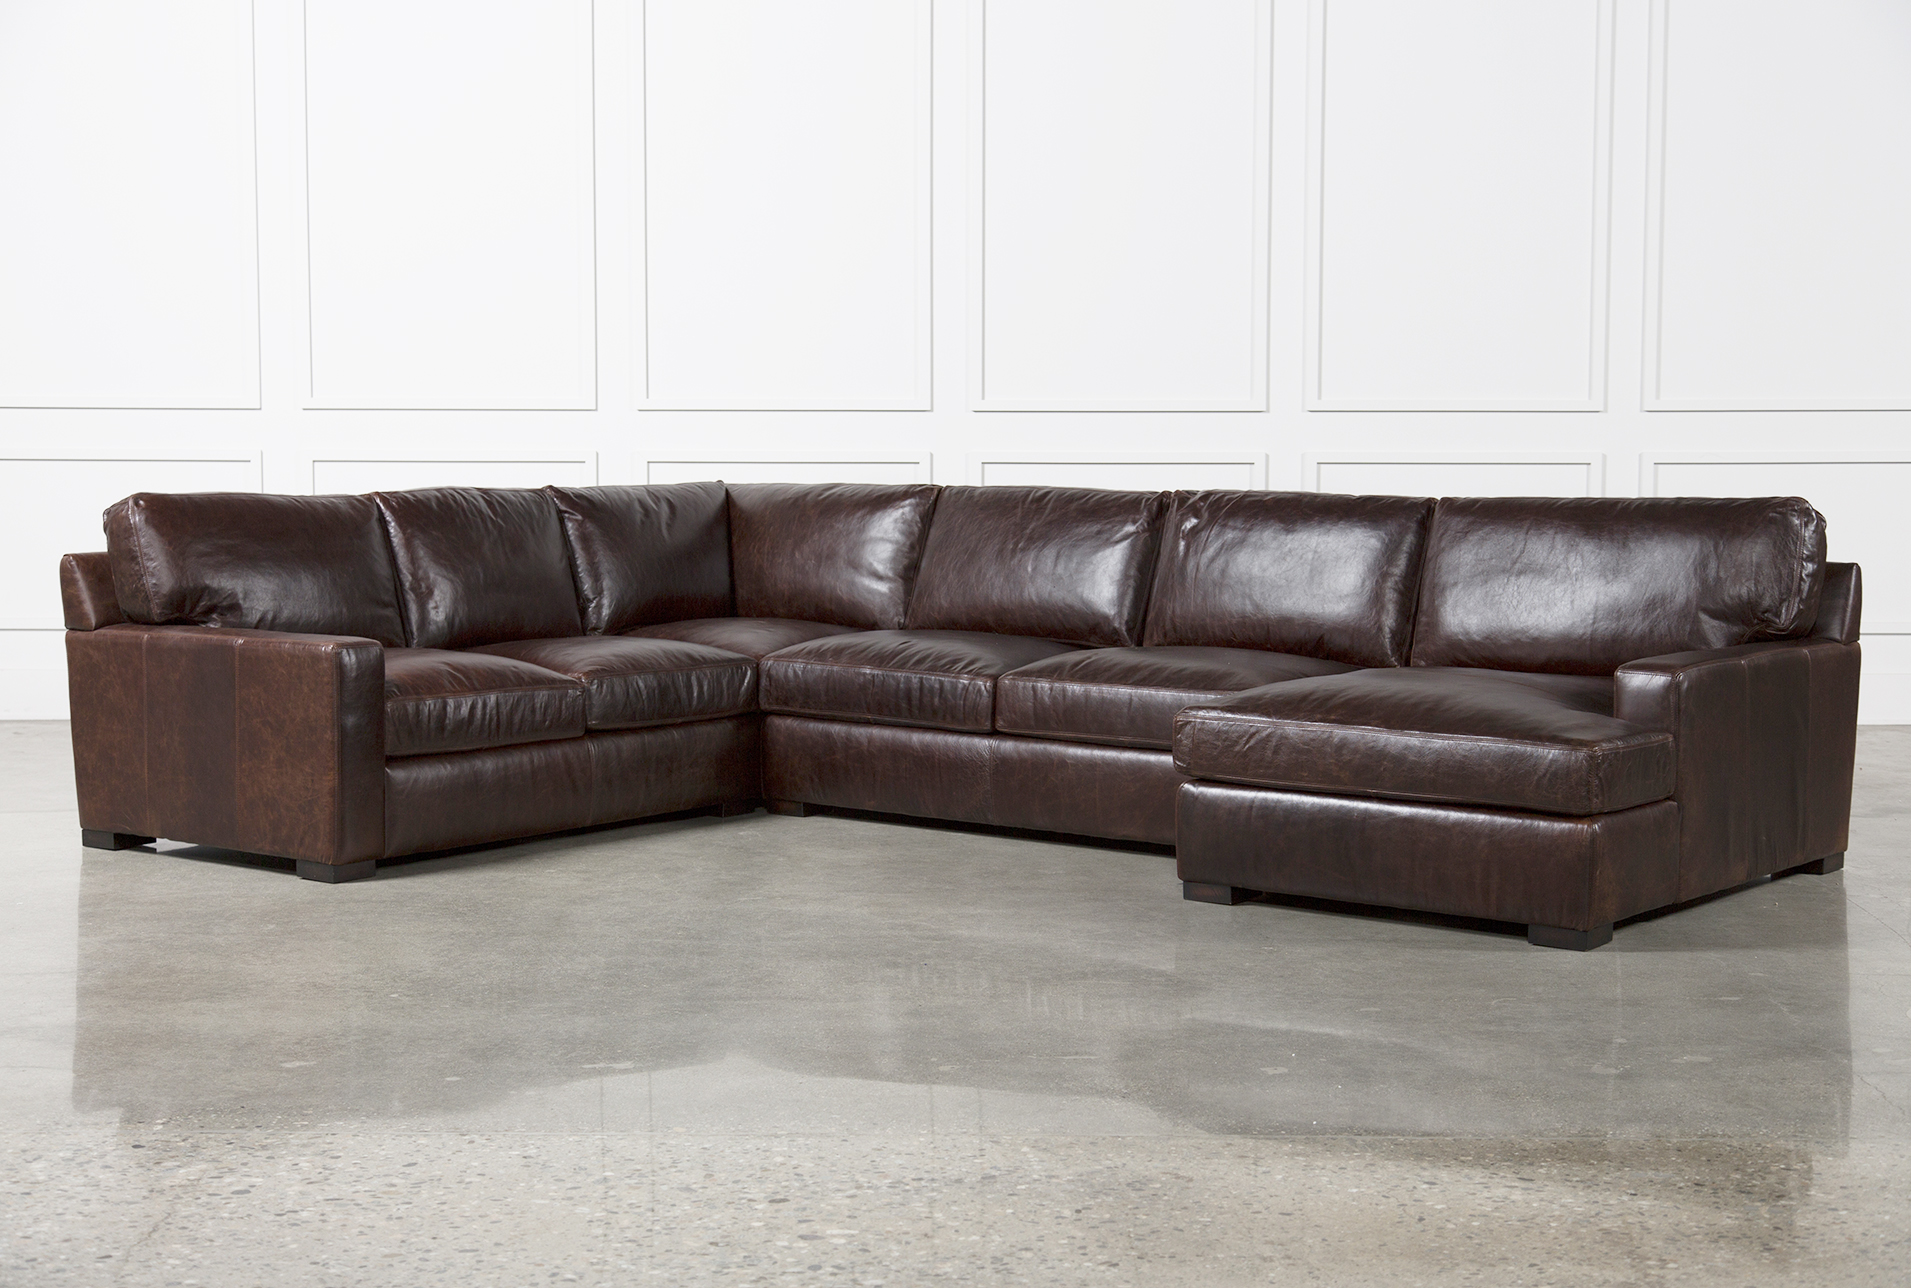 Gordon 3 Piece Sectional W/Raf Chaise | Living Spaces